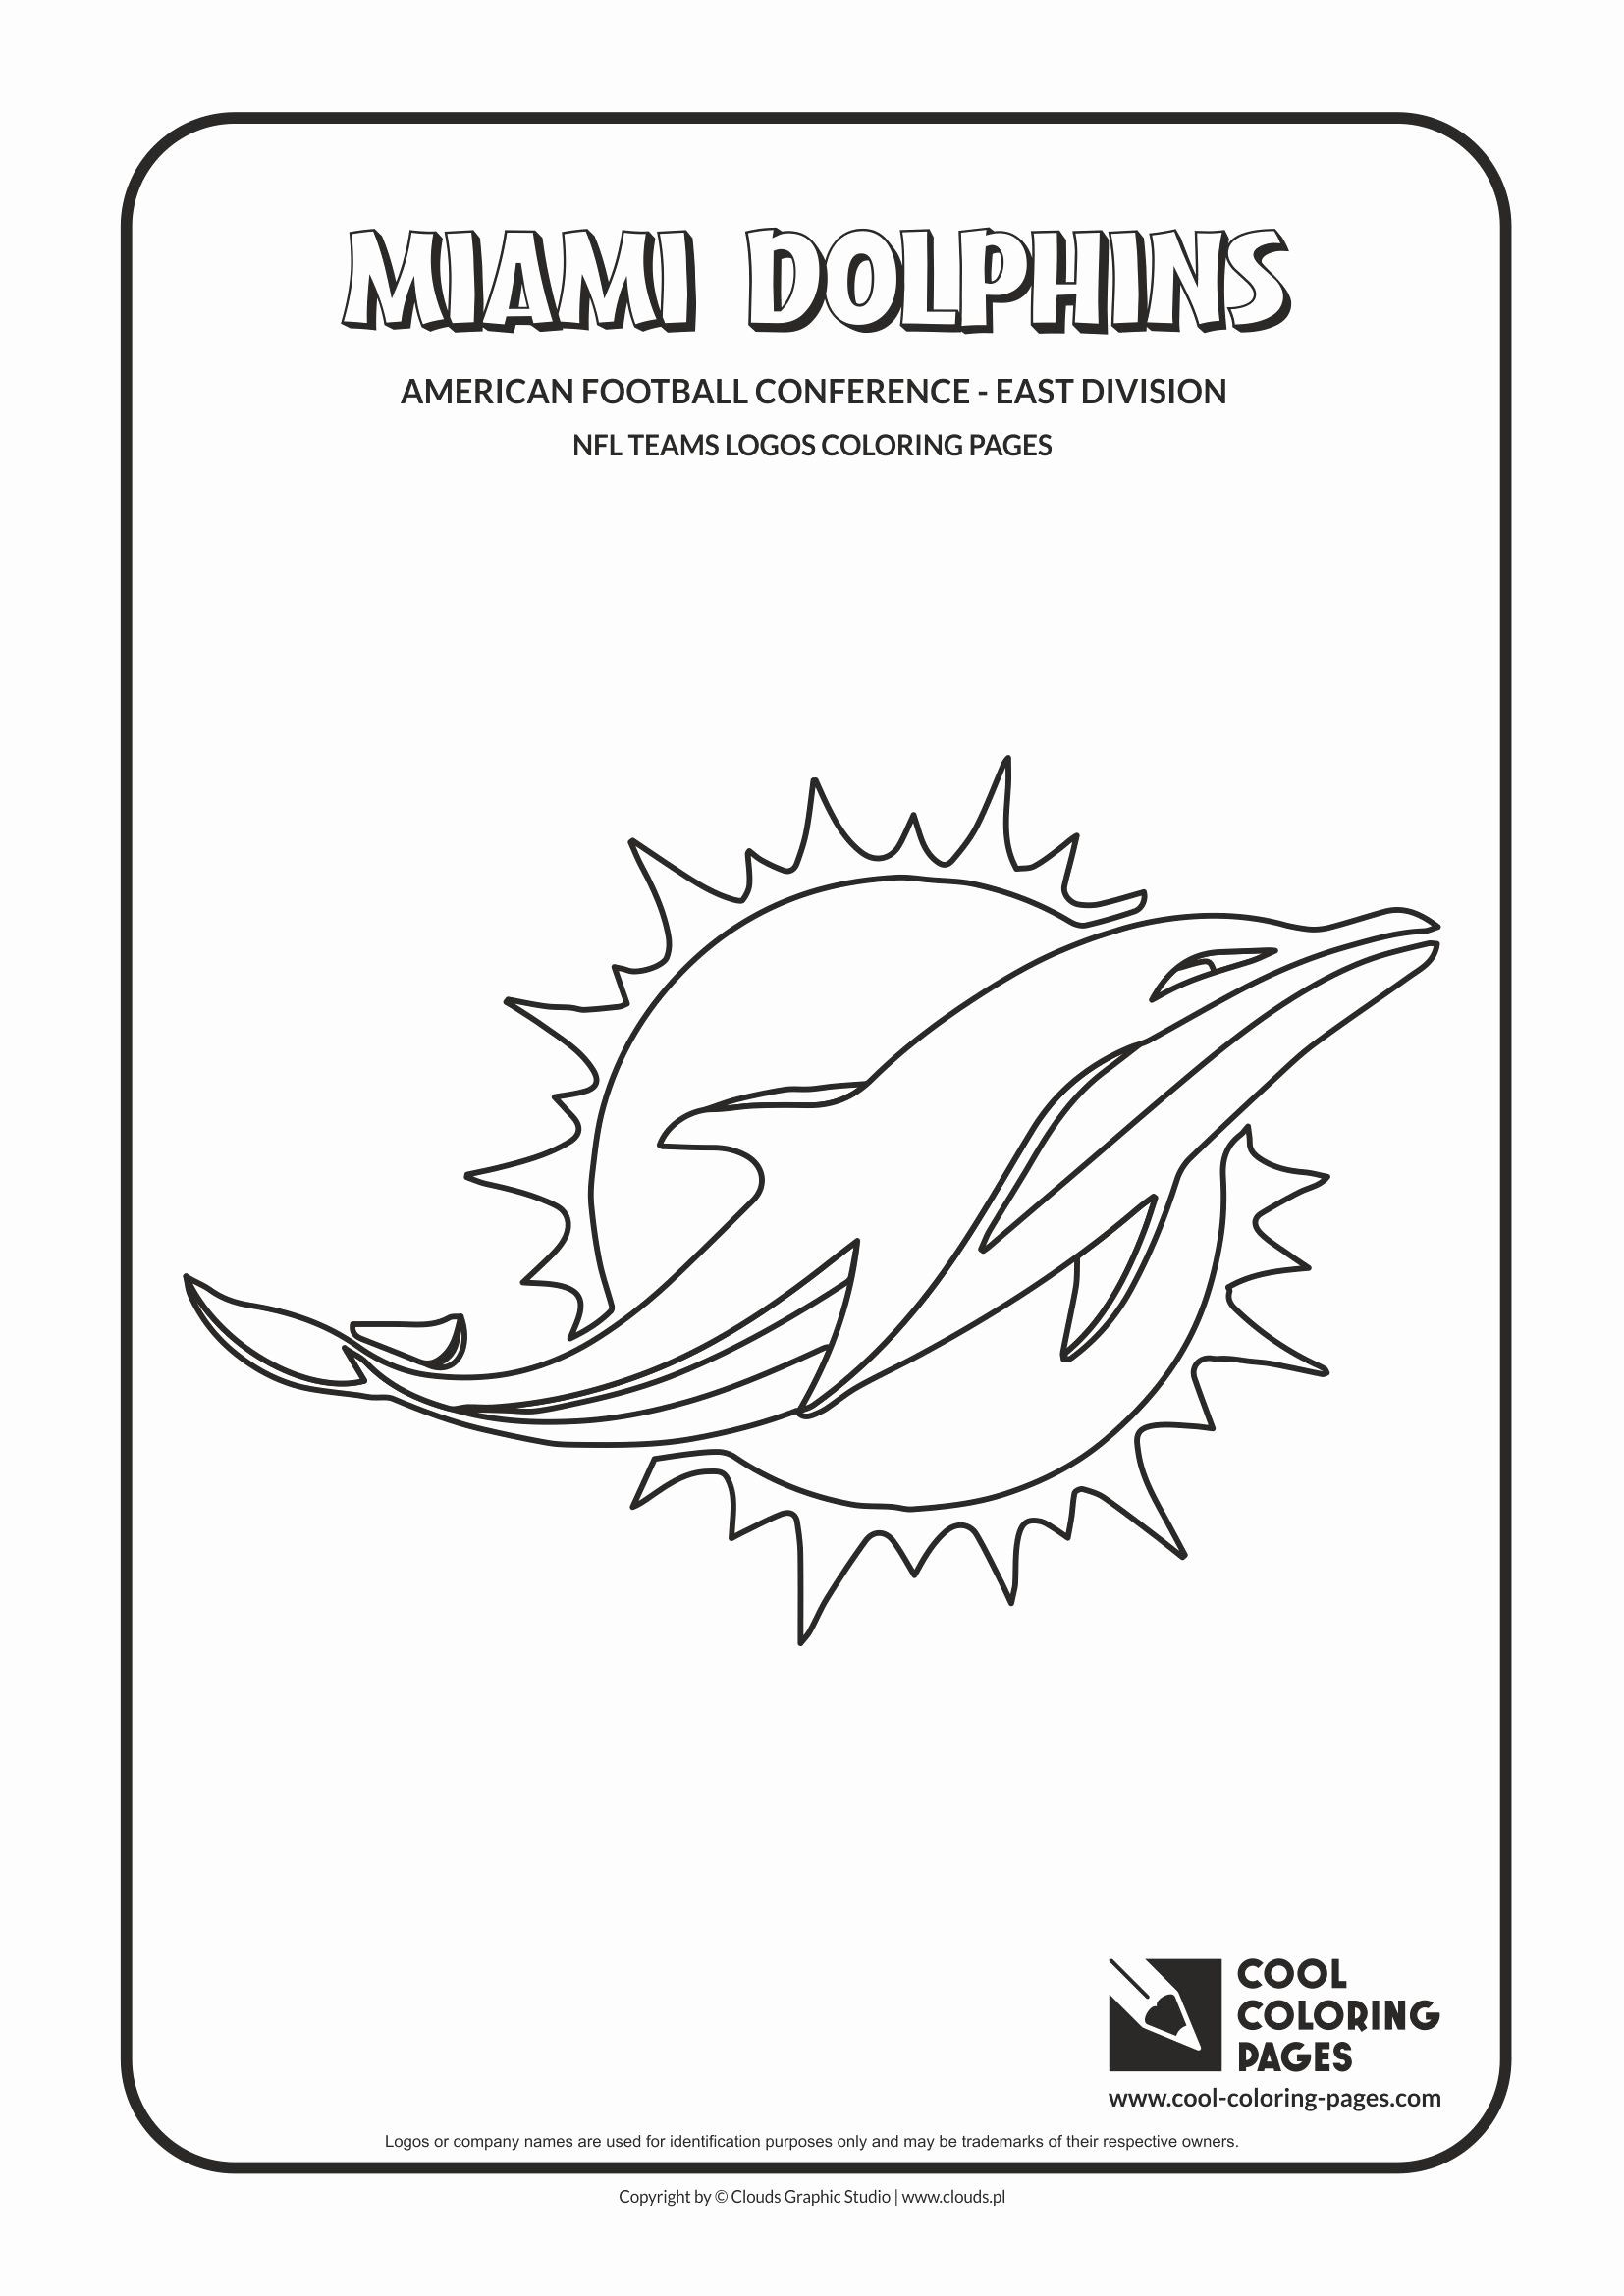 Nfl Logo Coloring Page Lovely Cool Coloring Pages Nfl Teams Logos Coloring Pages Cool Football Coloring Pages Dolphin Coloring Pages Sports Coloring Pages